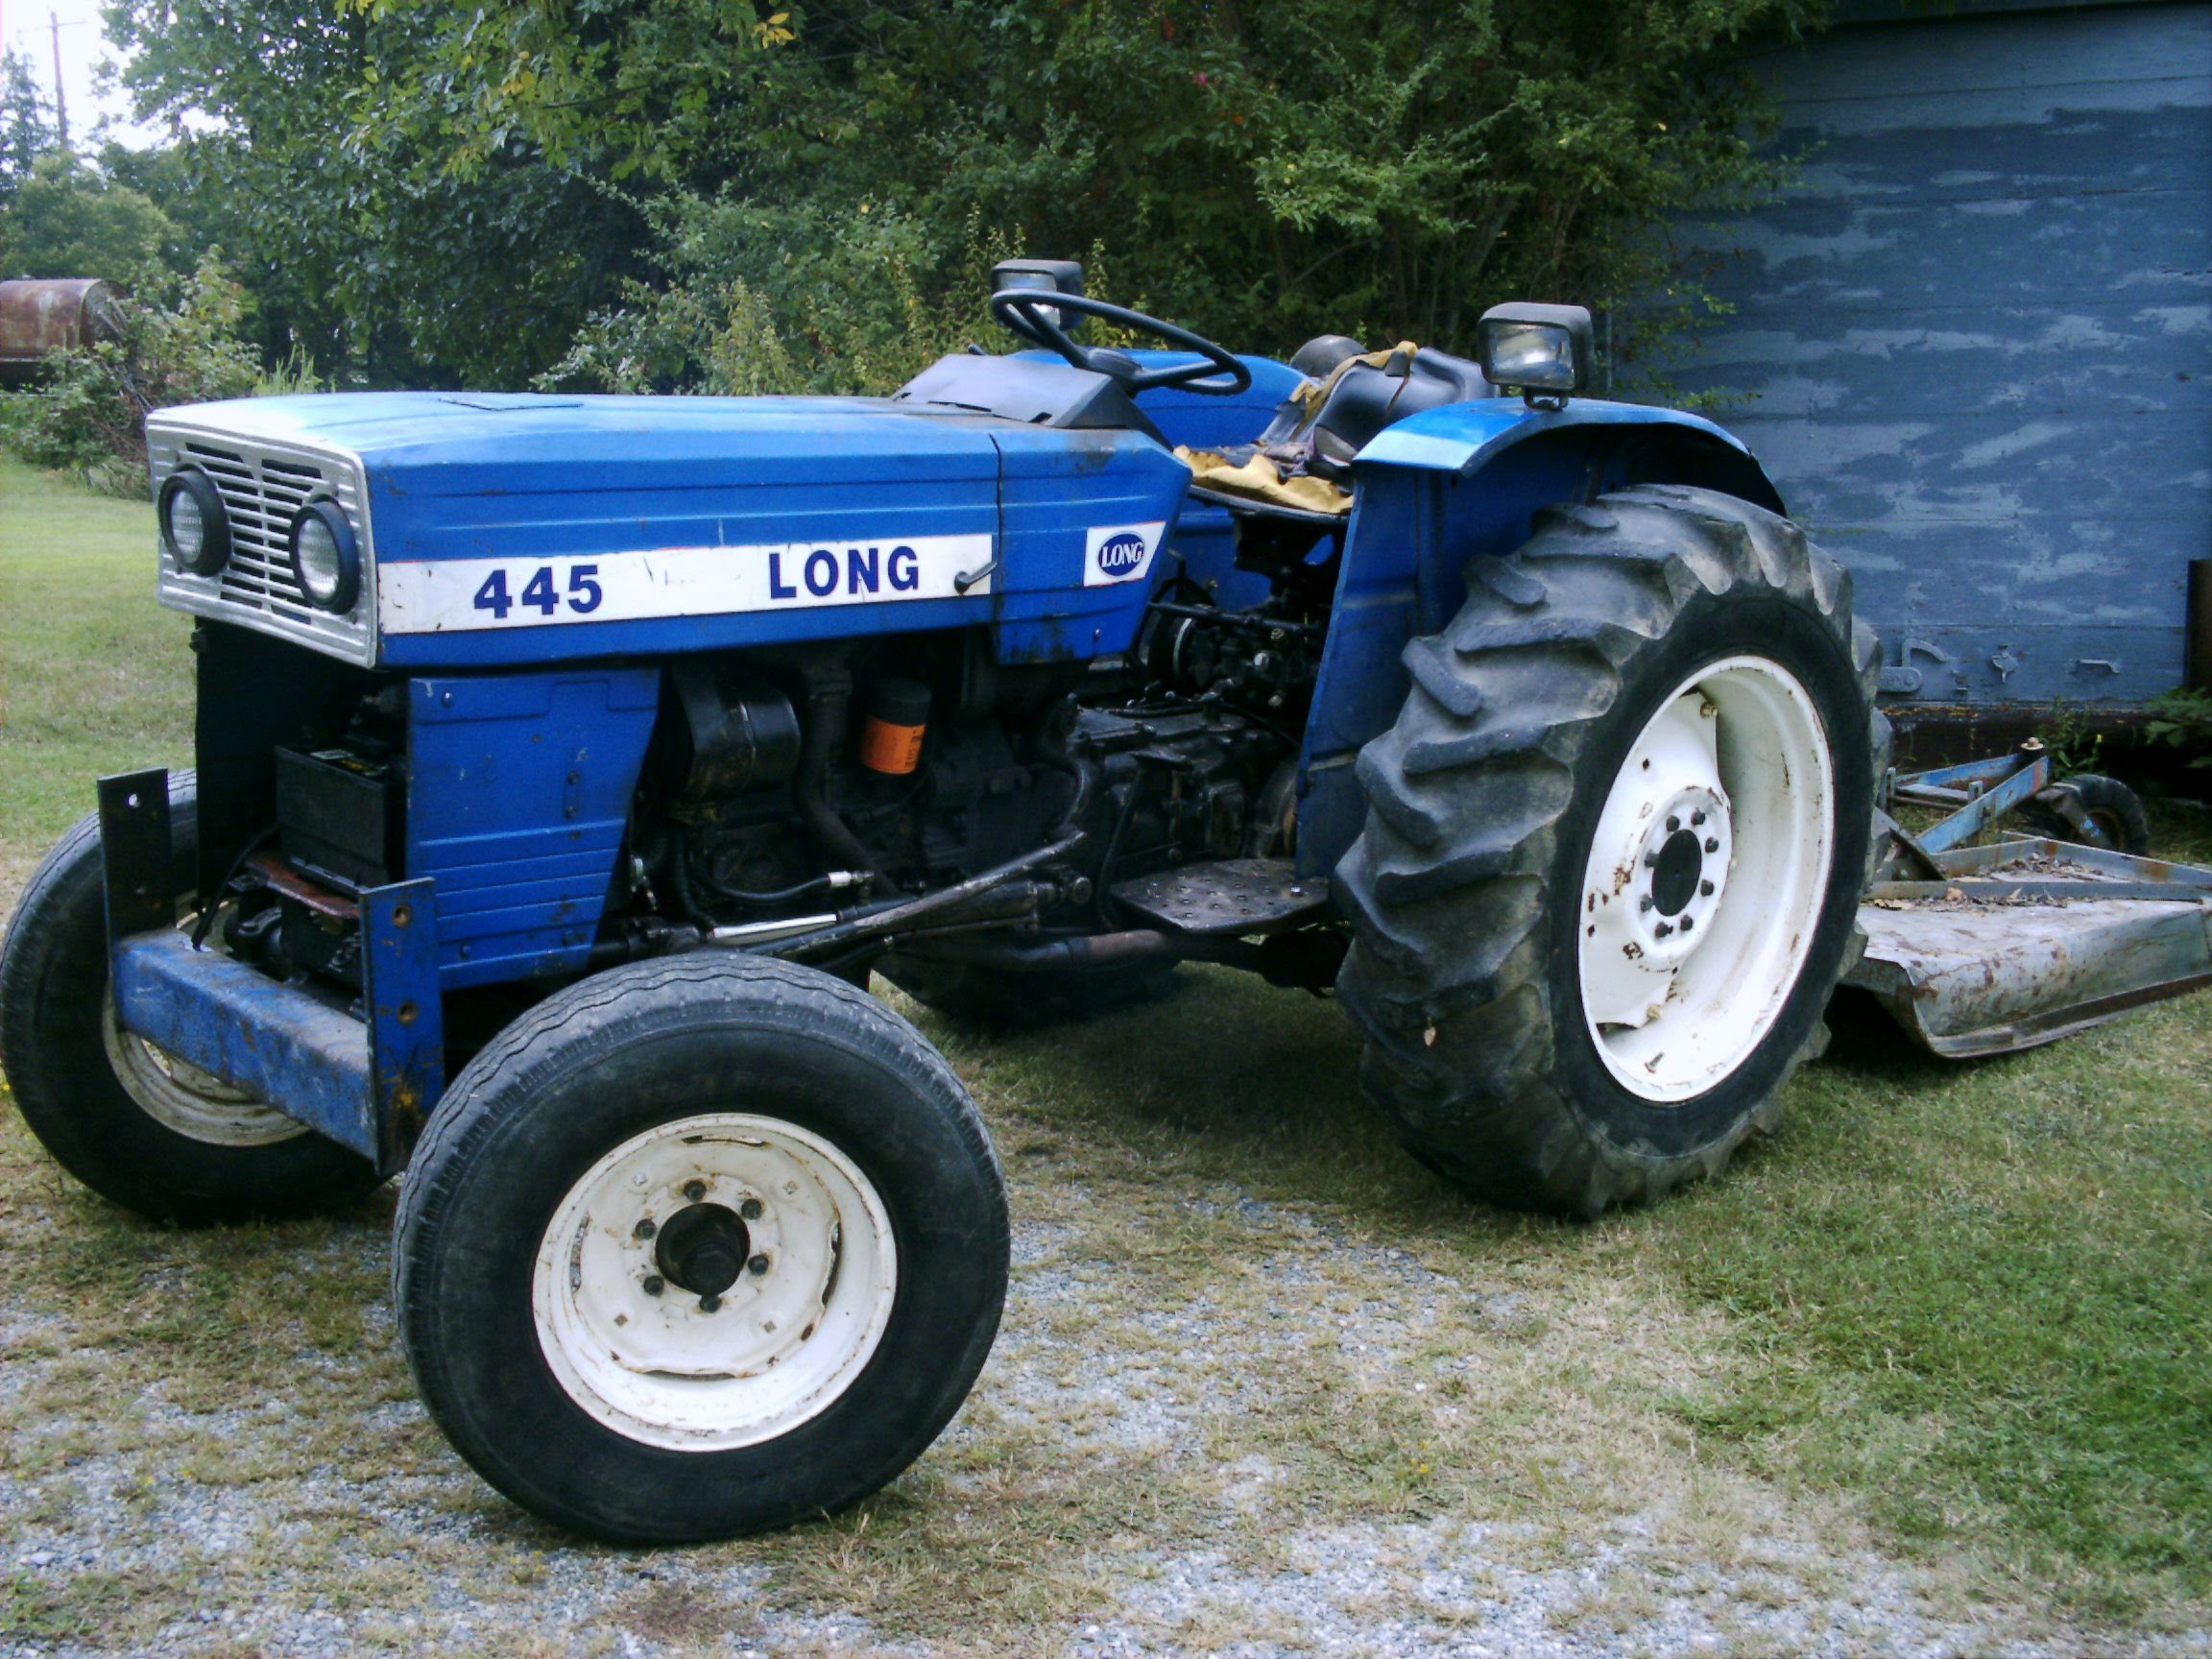 My Farm Parts, Tractor and Implement Parts at an Affordable Price